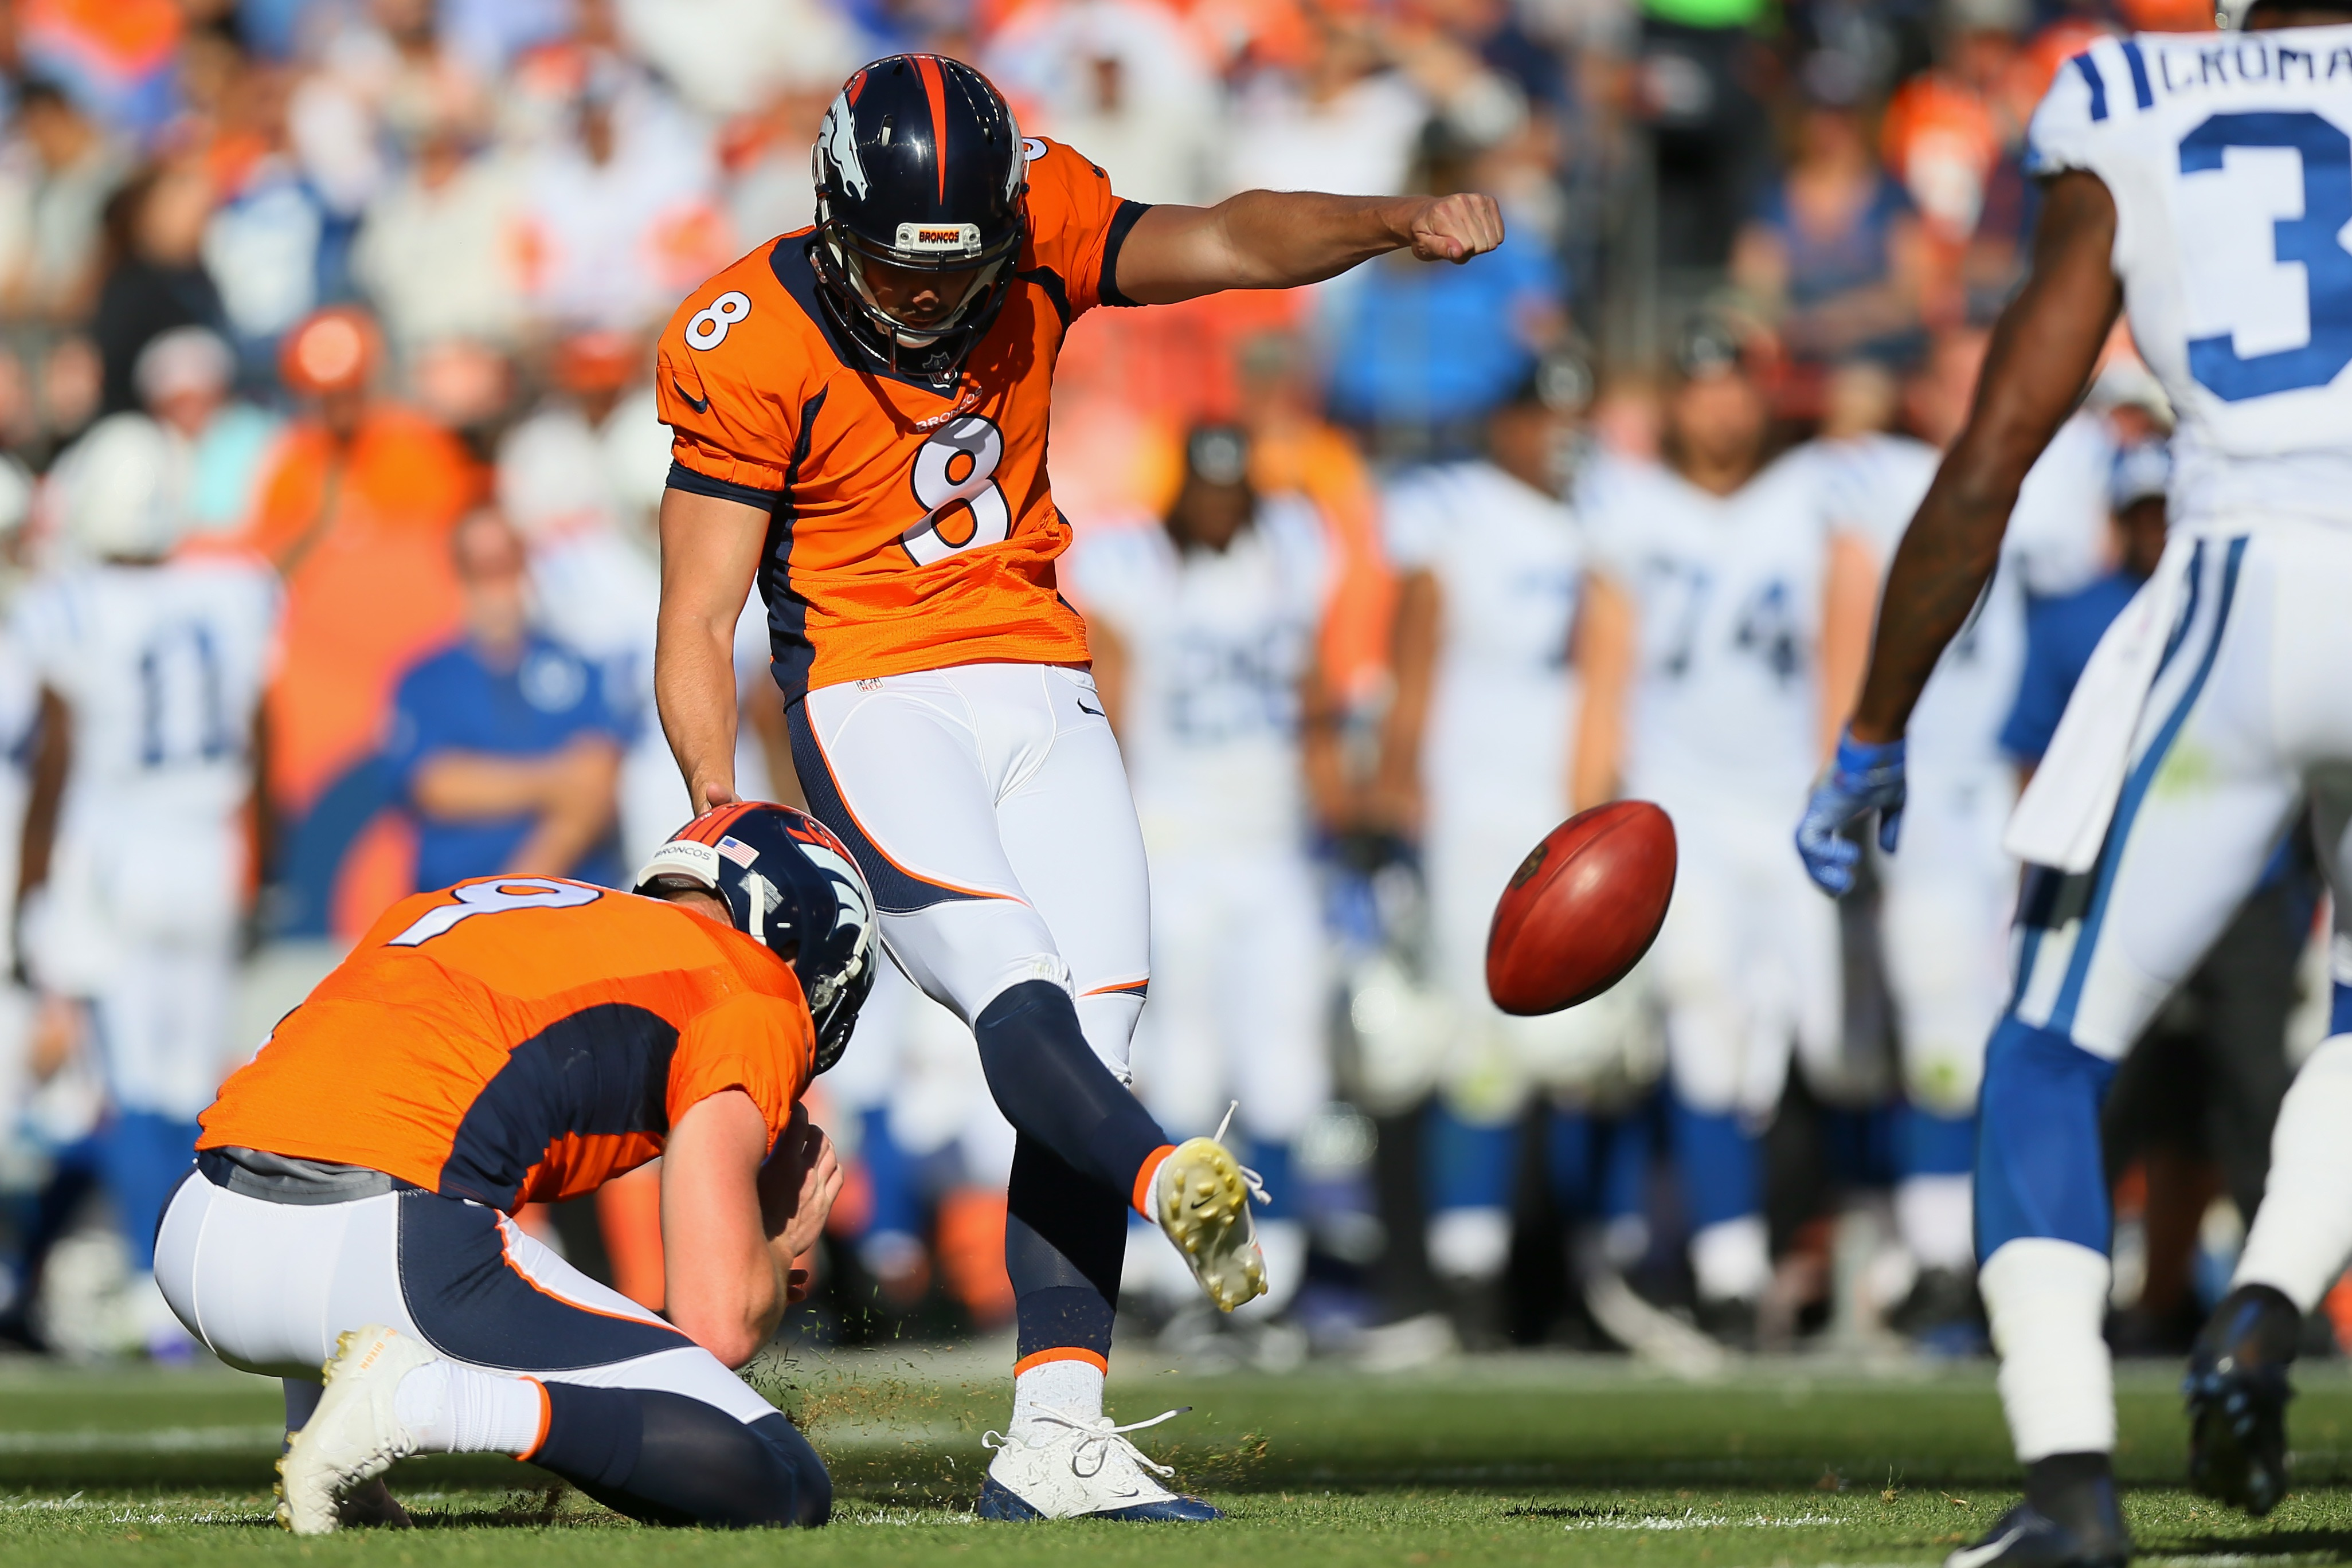 Kicker Brandon McManus #8 of the Denver Broncos makes a 33 year field goal in the third quarter of the game against the Indianapolis Colts on Sept. 18, 2016 in Denver. (credit: Justin Edmonds/Getty Images)